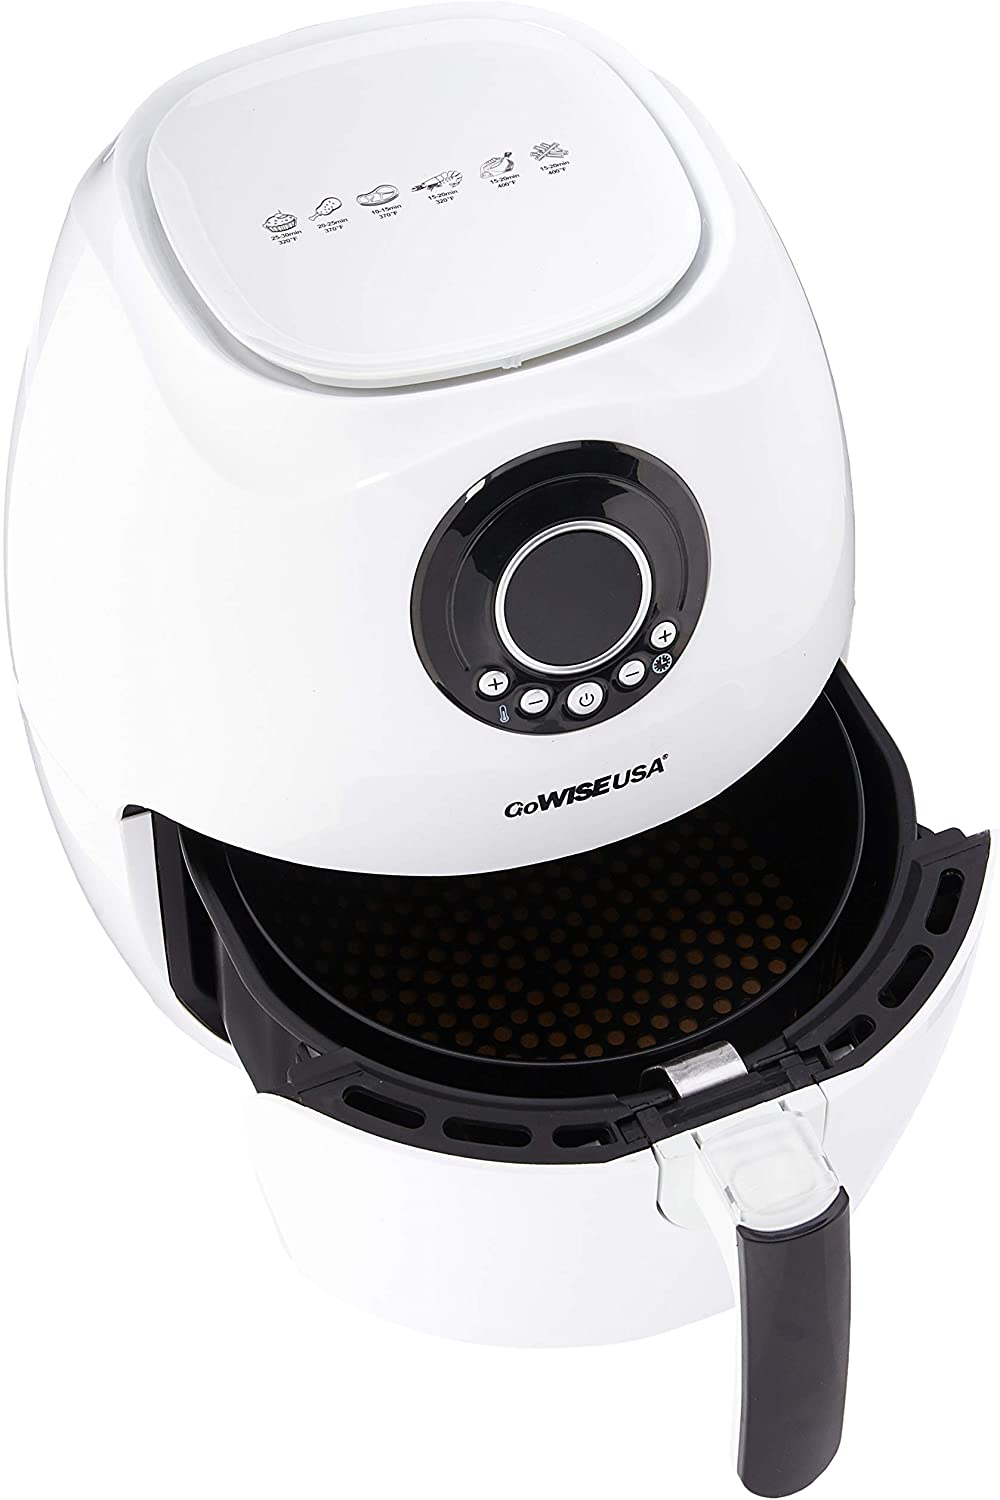 the GoWISE USA 2.75-Quart air fryer